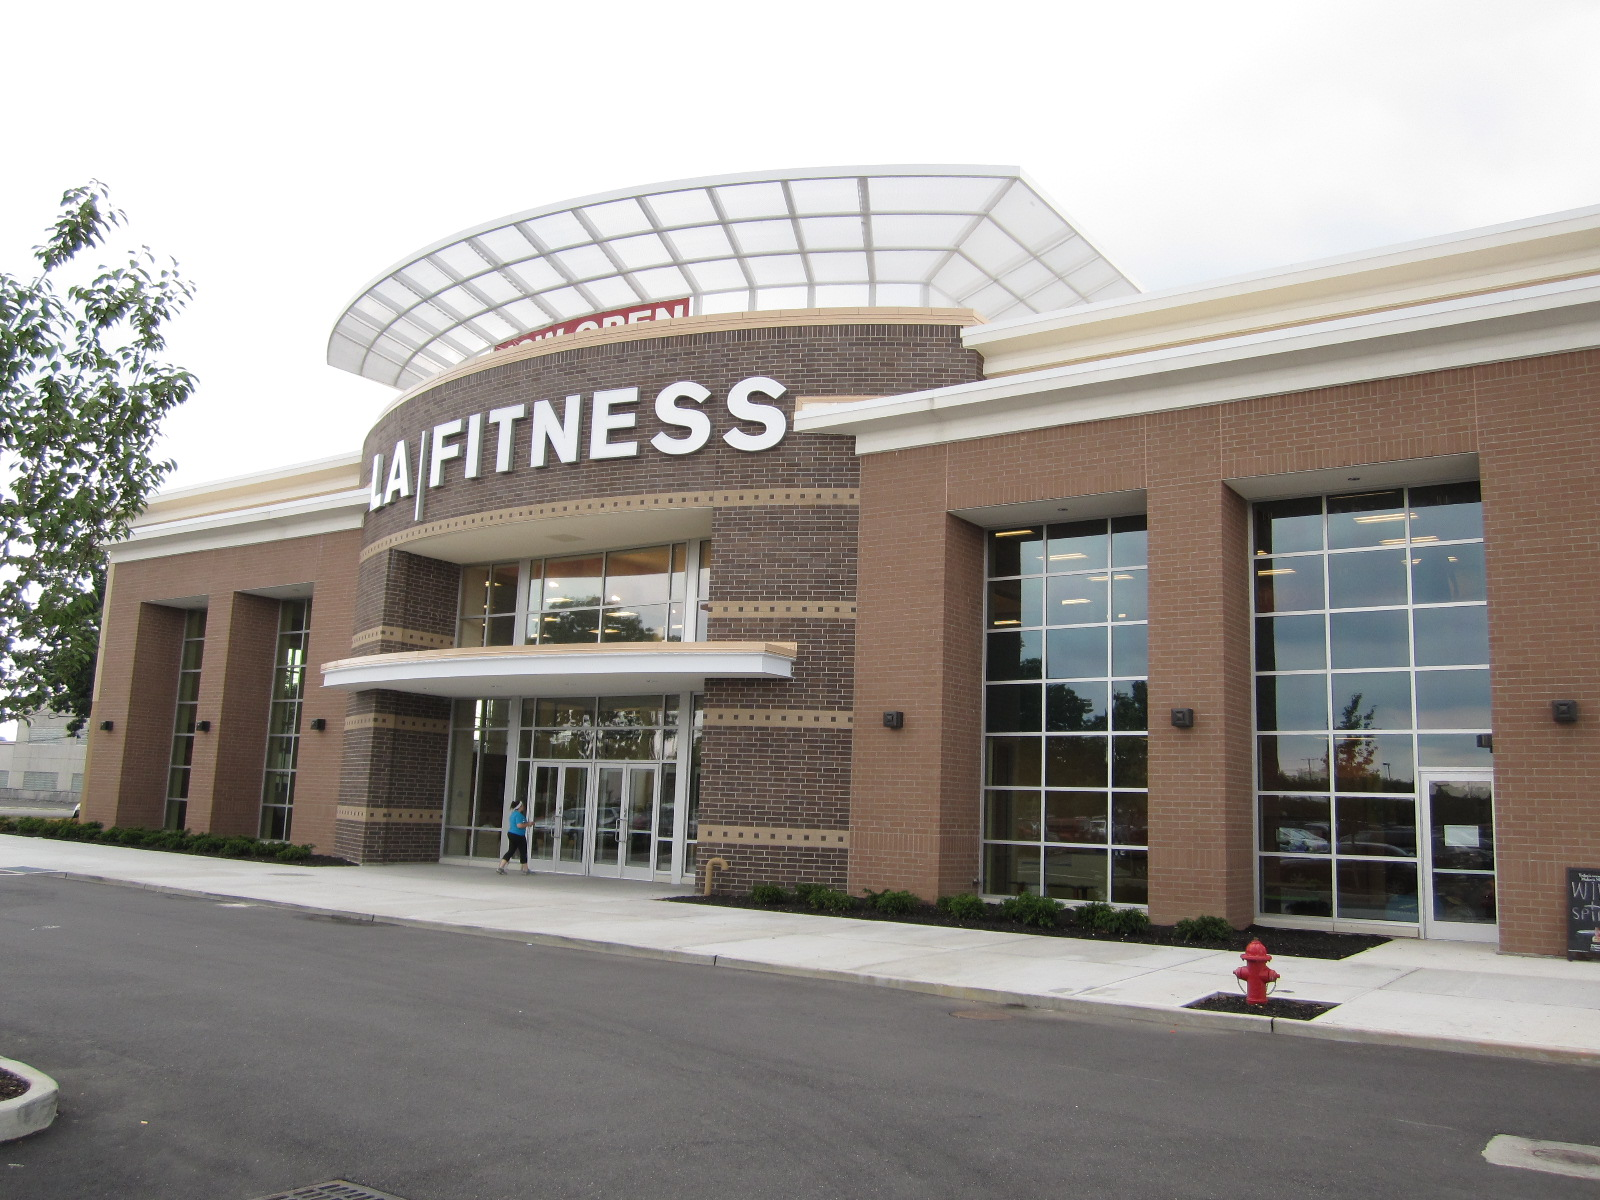 la fitness garden city class schedule cxpz info photo of la fitness garden city park ny united states wifi